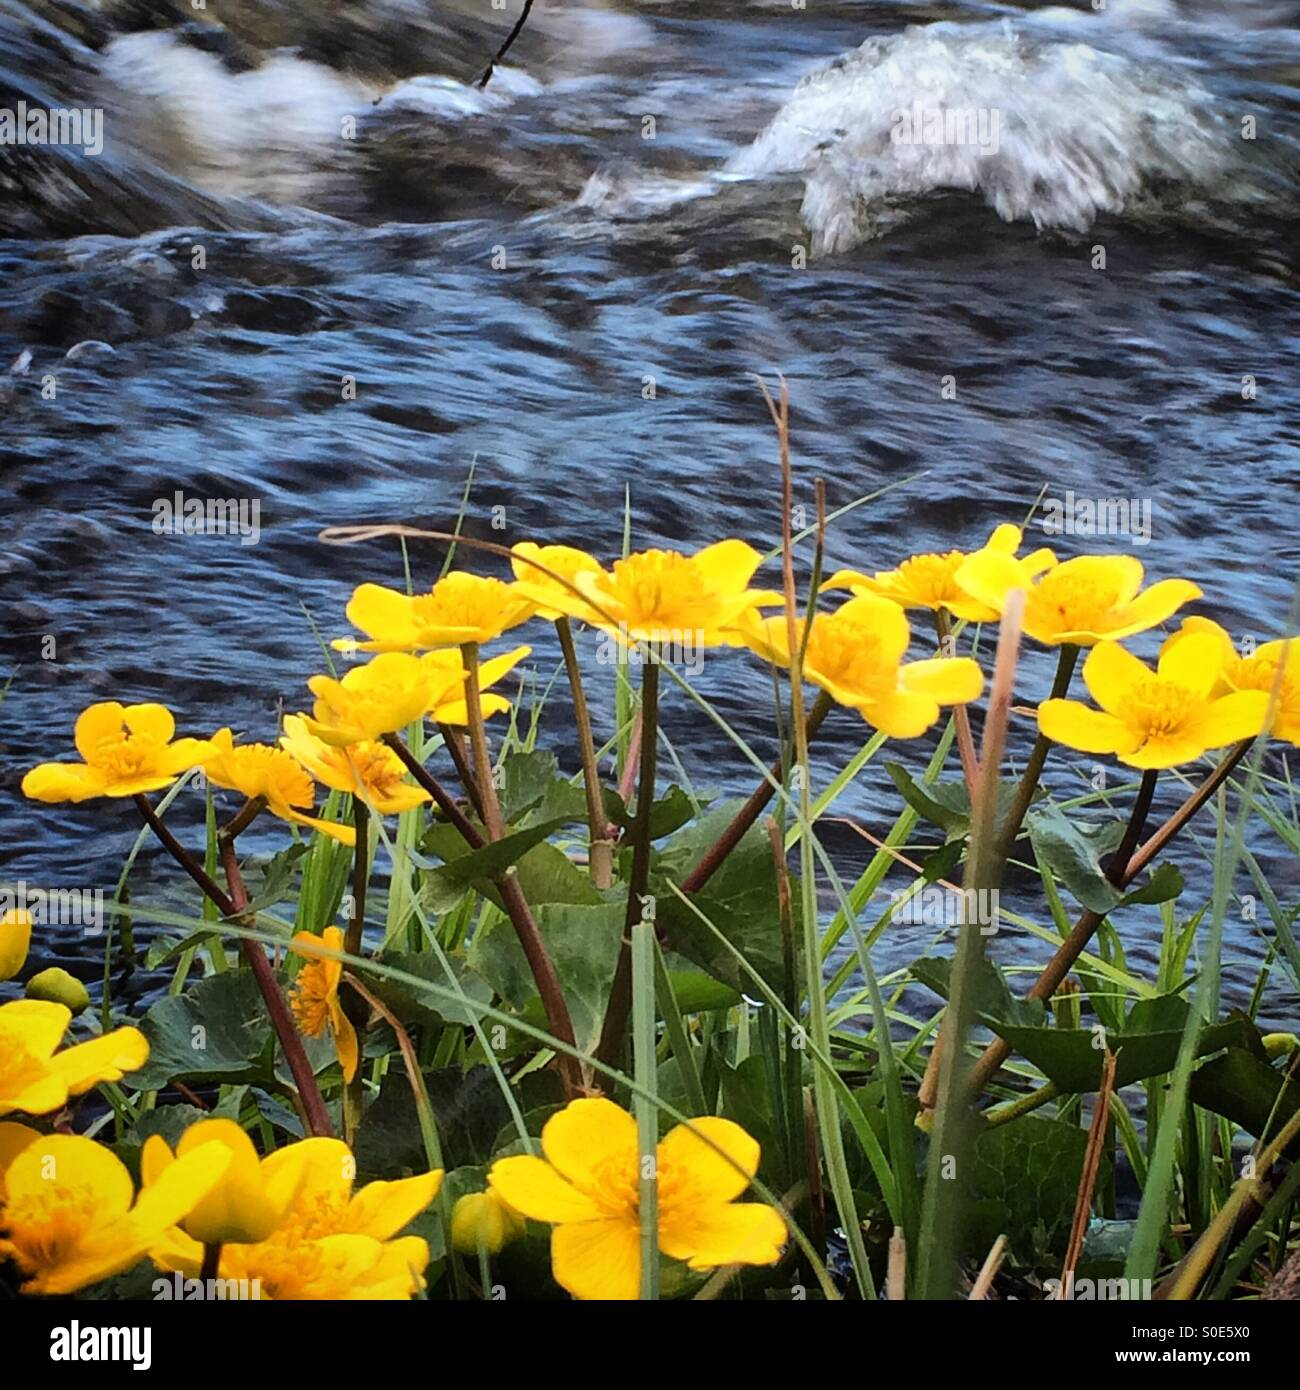 Yellow flowers in Dalarna, Sweden - Stock Image